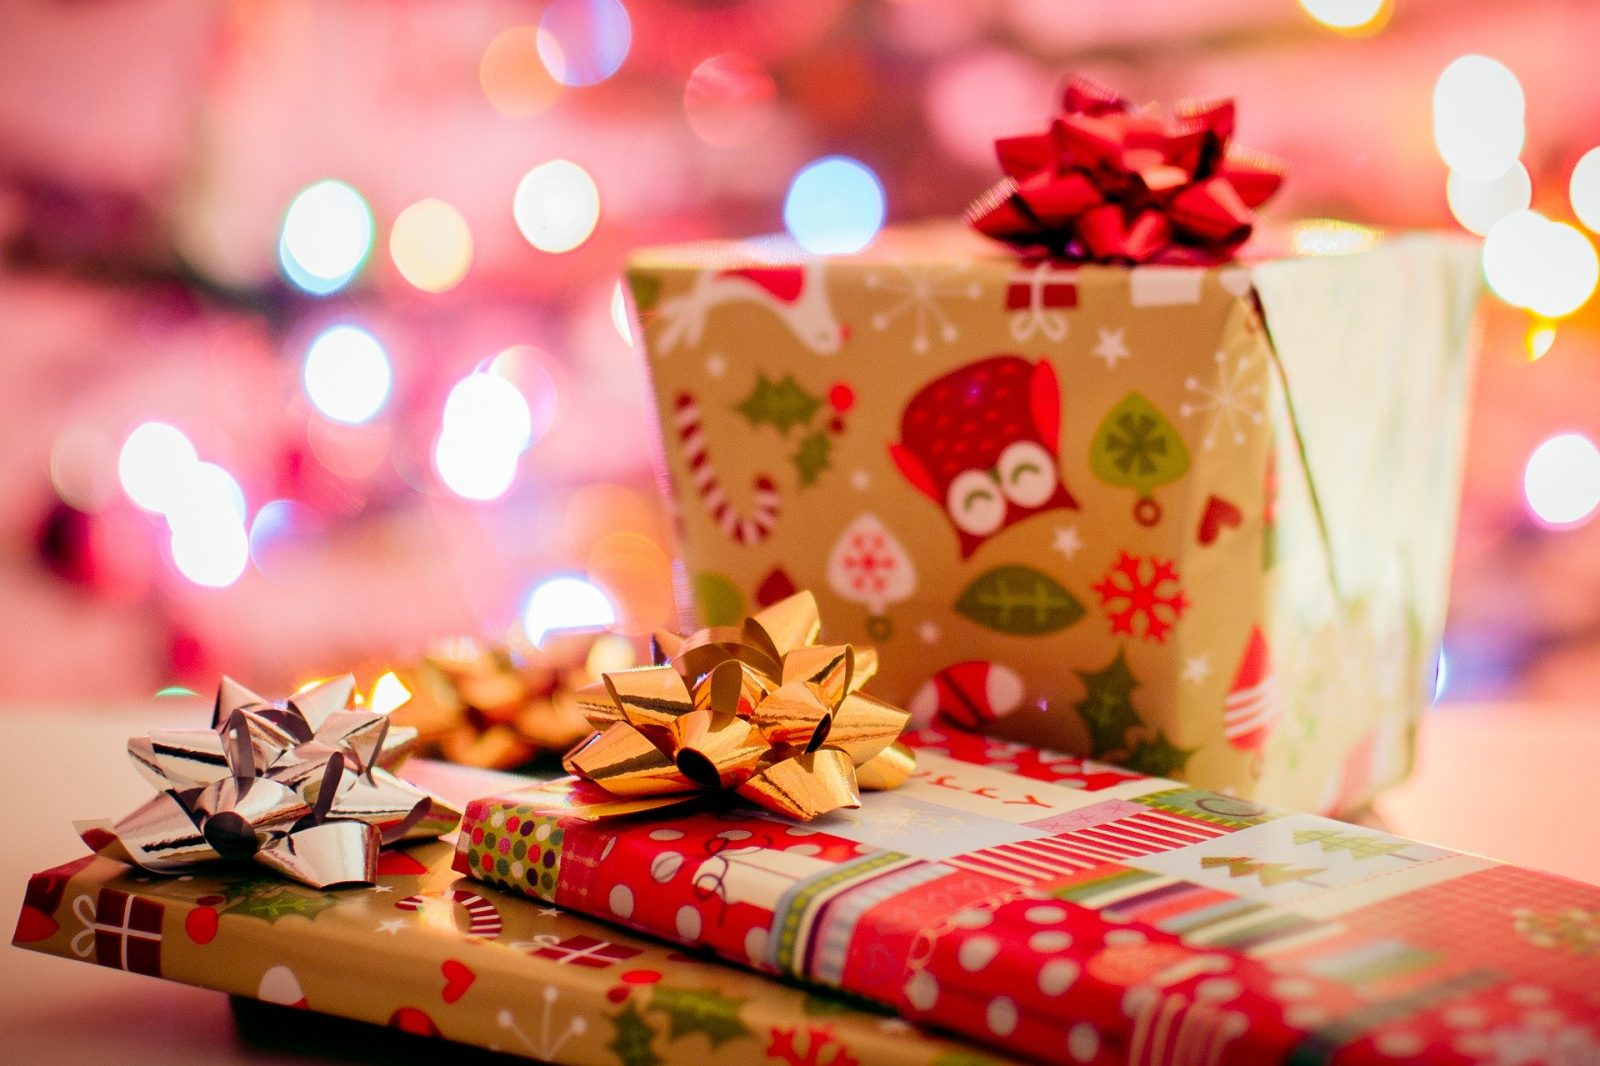 OPINION: Where to put your money this holiday season